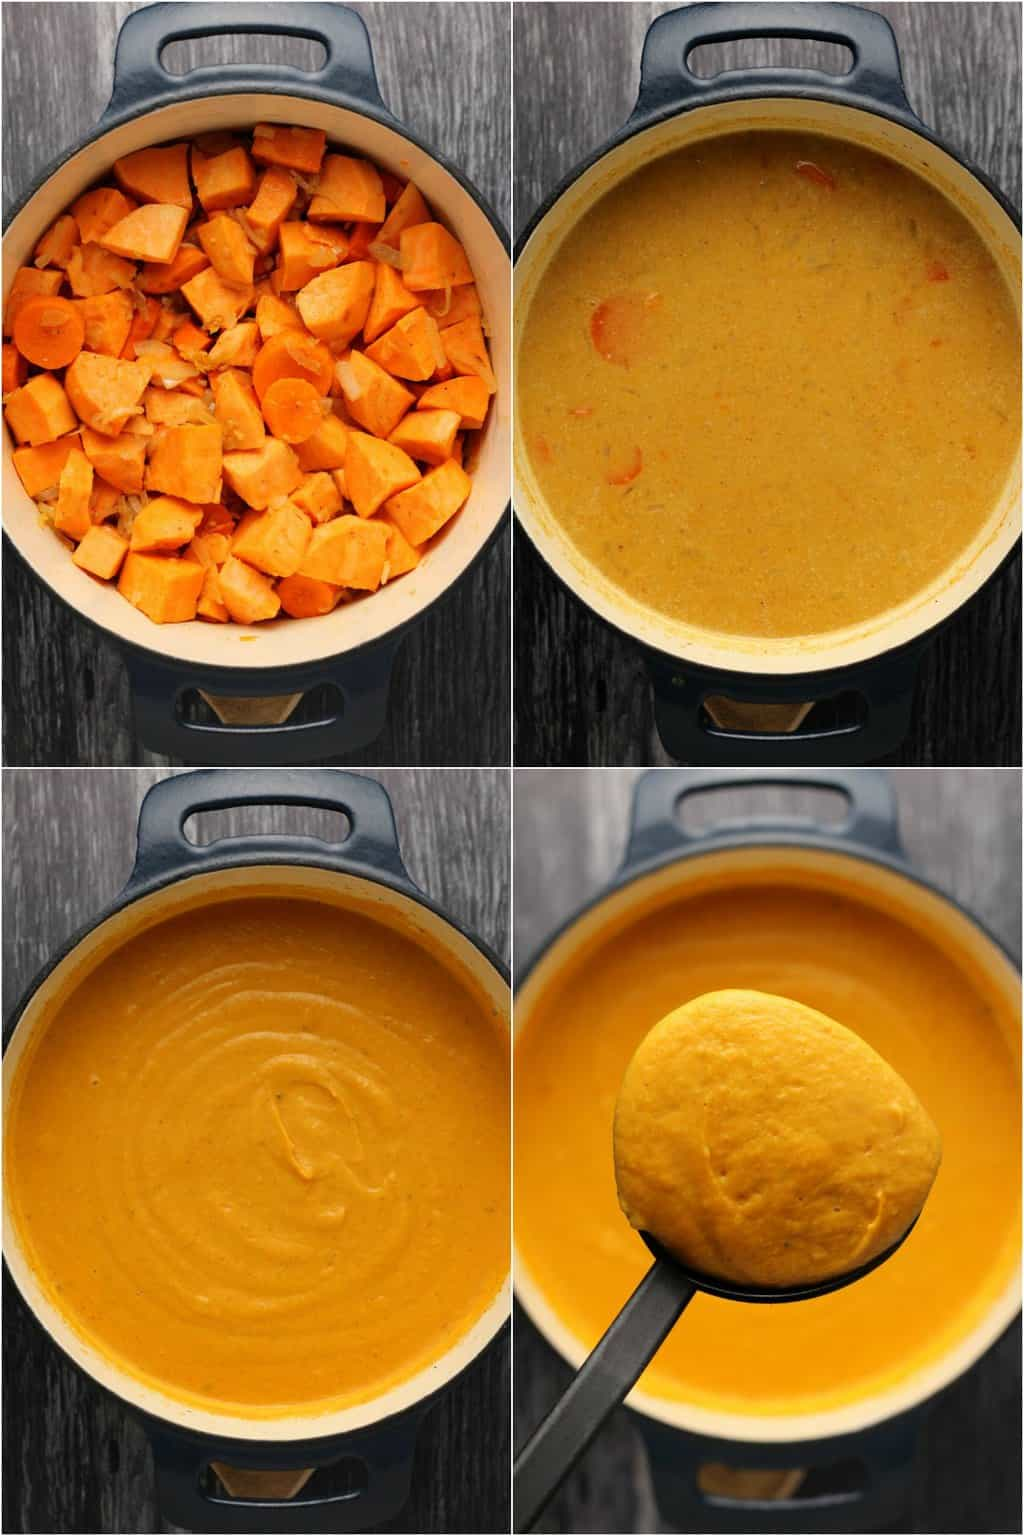 Step by step process photo collage of making vegan sweet potato soup.